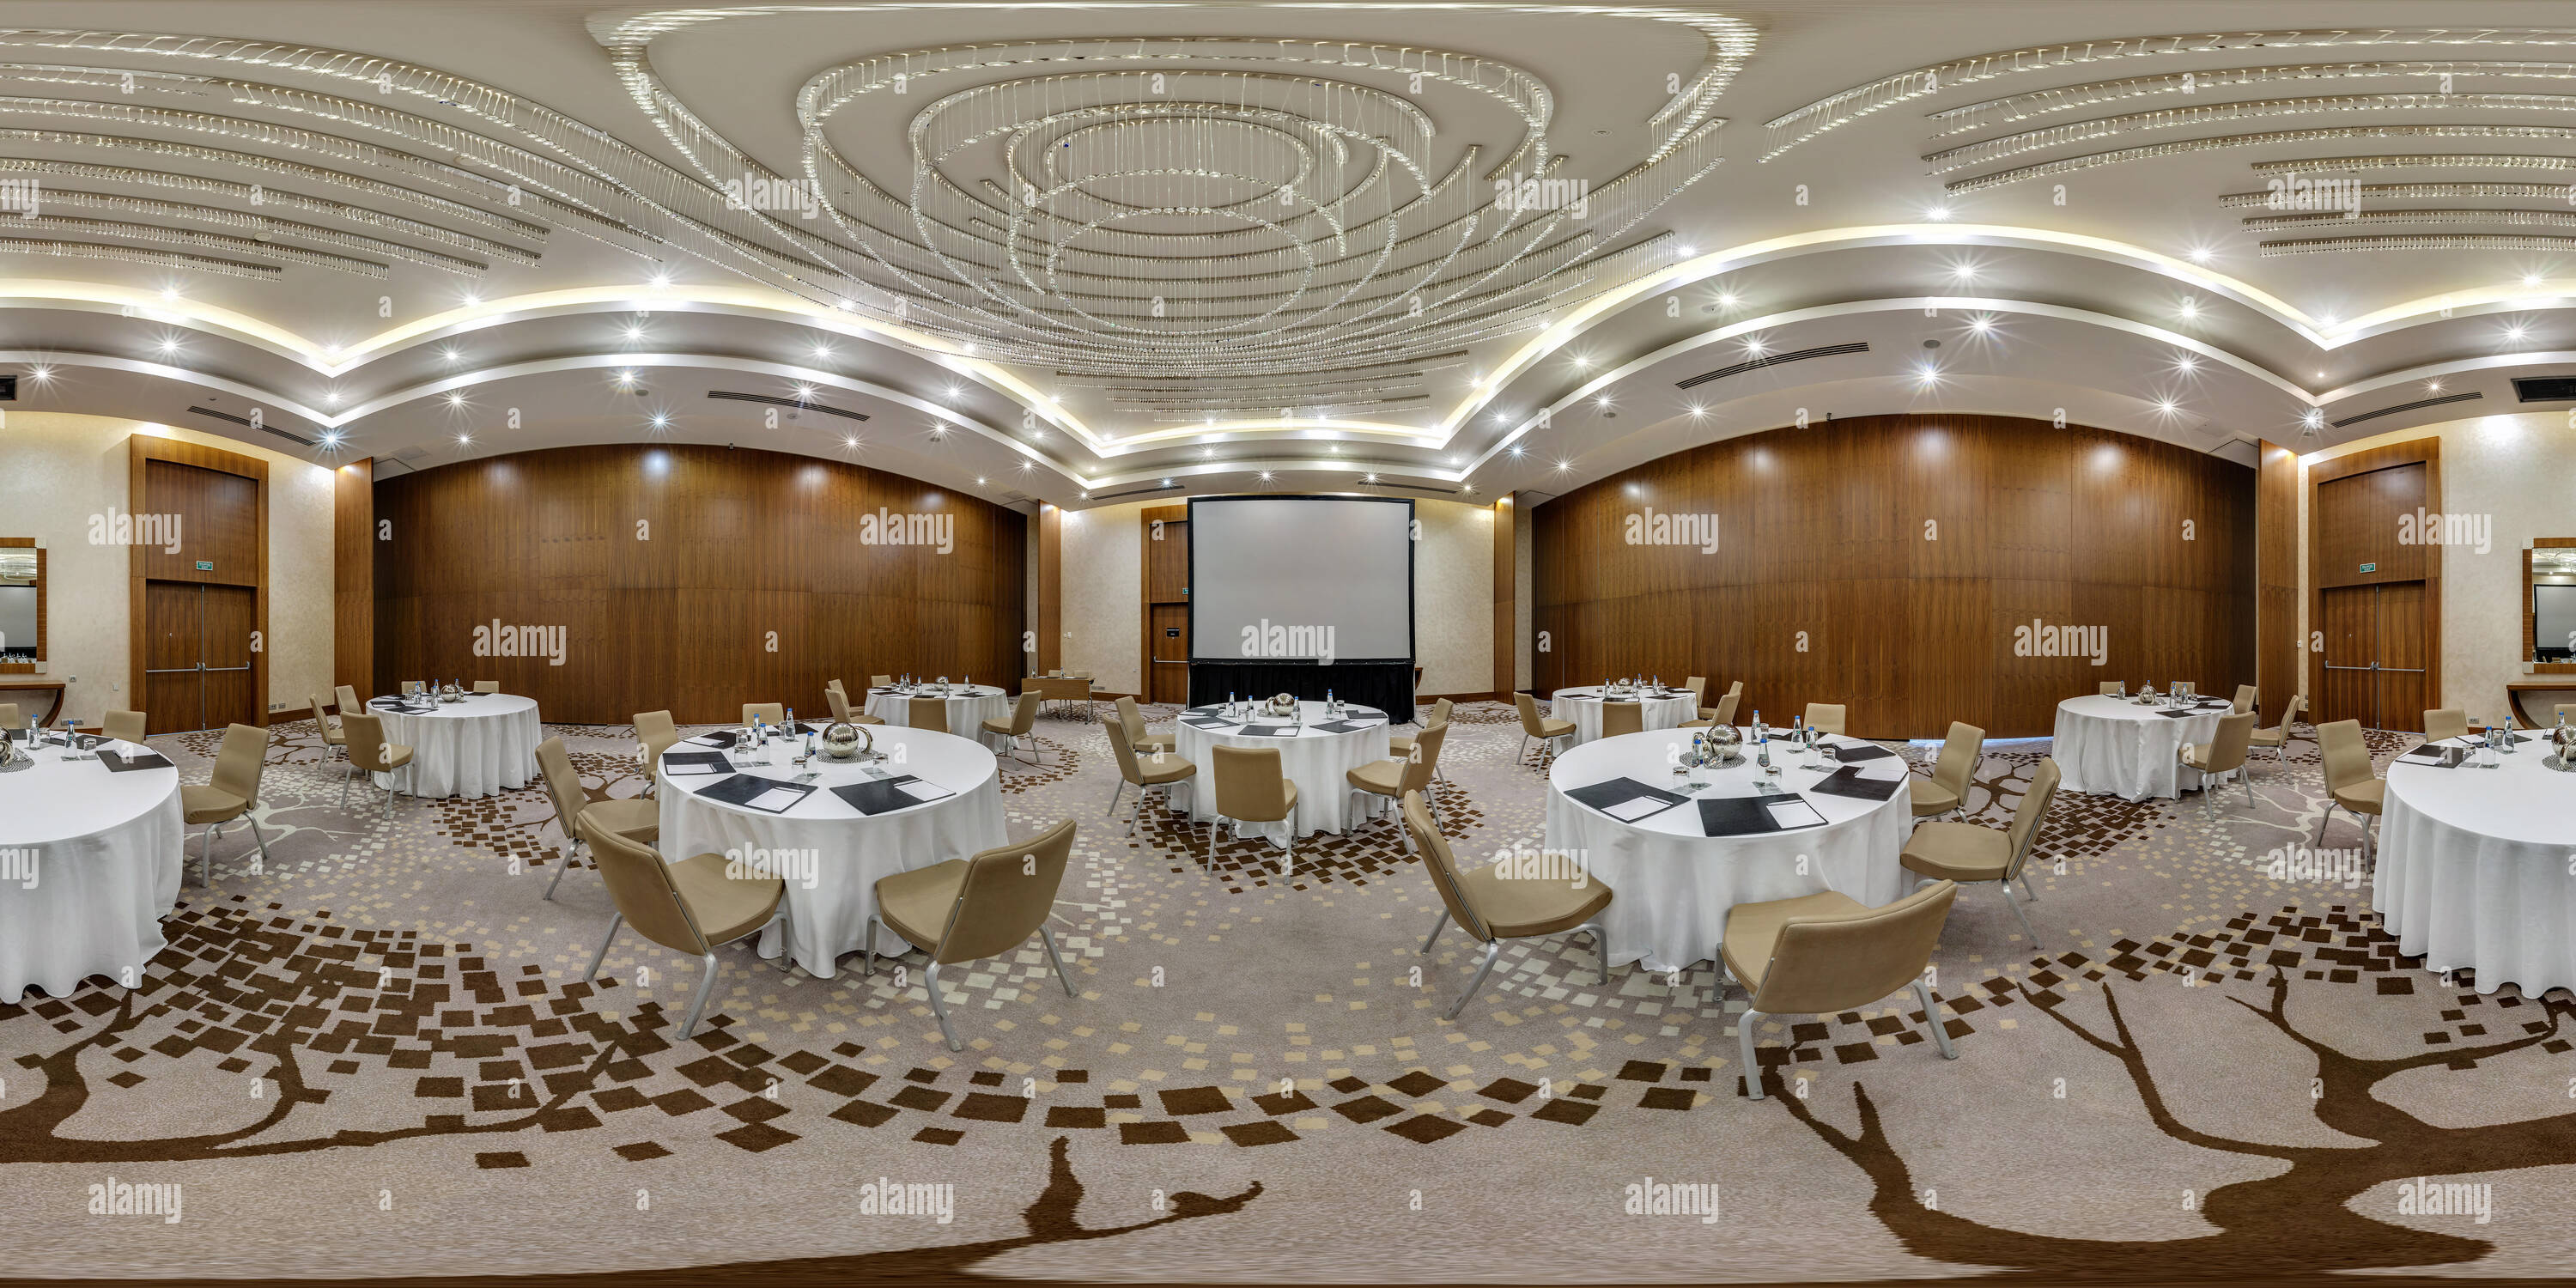 360 View Of Minsk Belarus August 2017 Full Panorama 360 Angle View Seamless Inside Interior Of Large Banquet Hall In Modern Hotel In Equirectangular Spherica Alamy